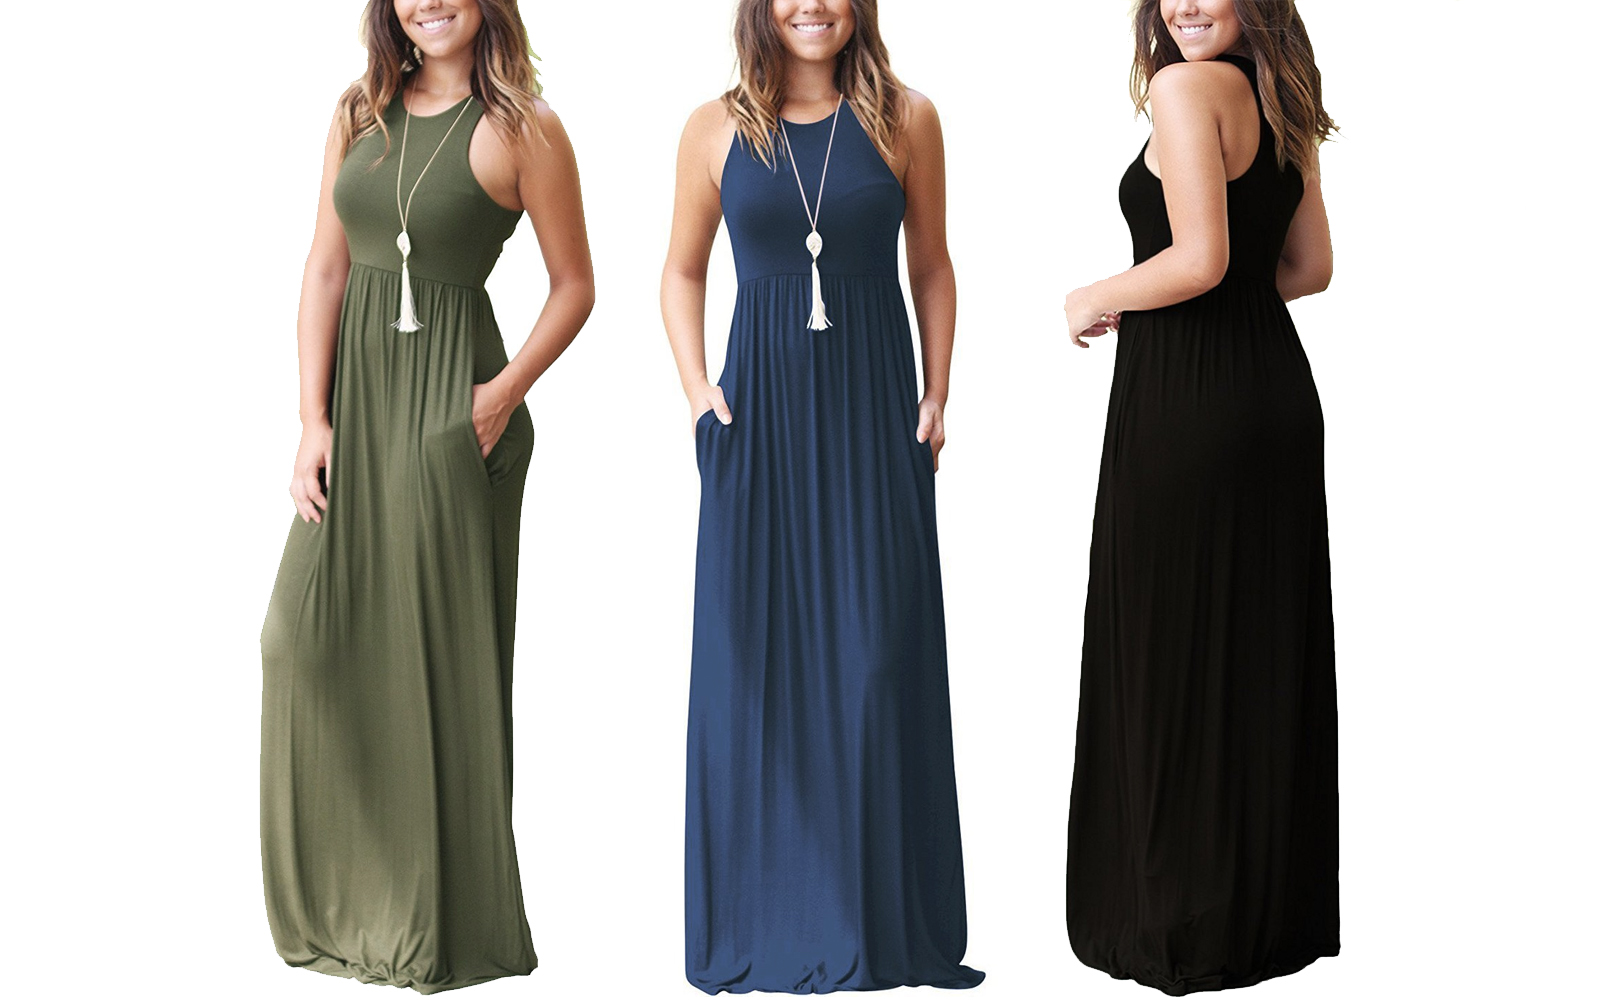 Amazon Best-seller Travel Maxi Dress